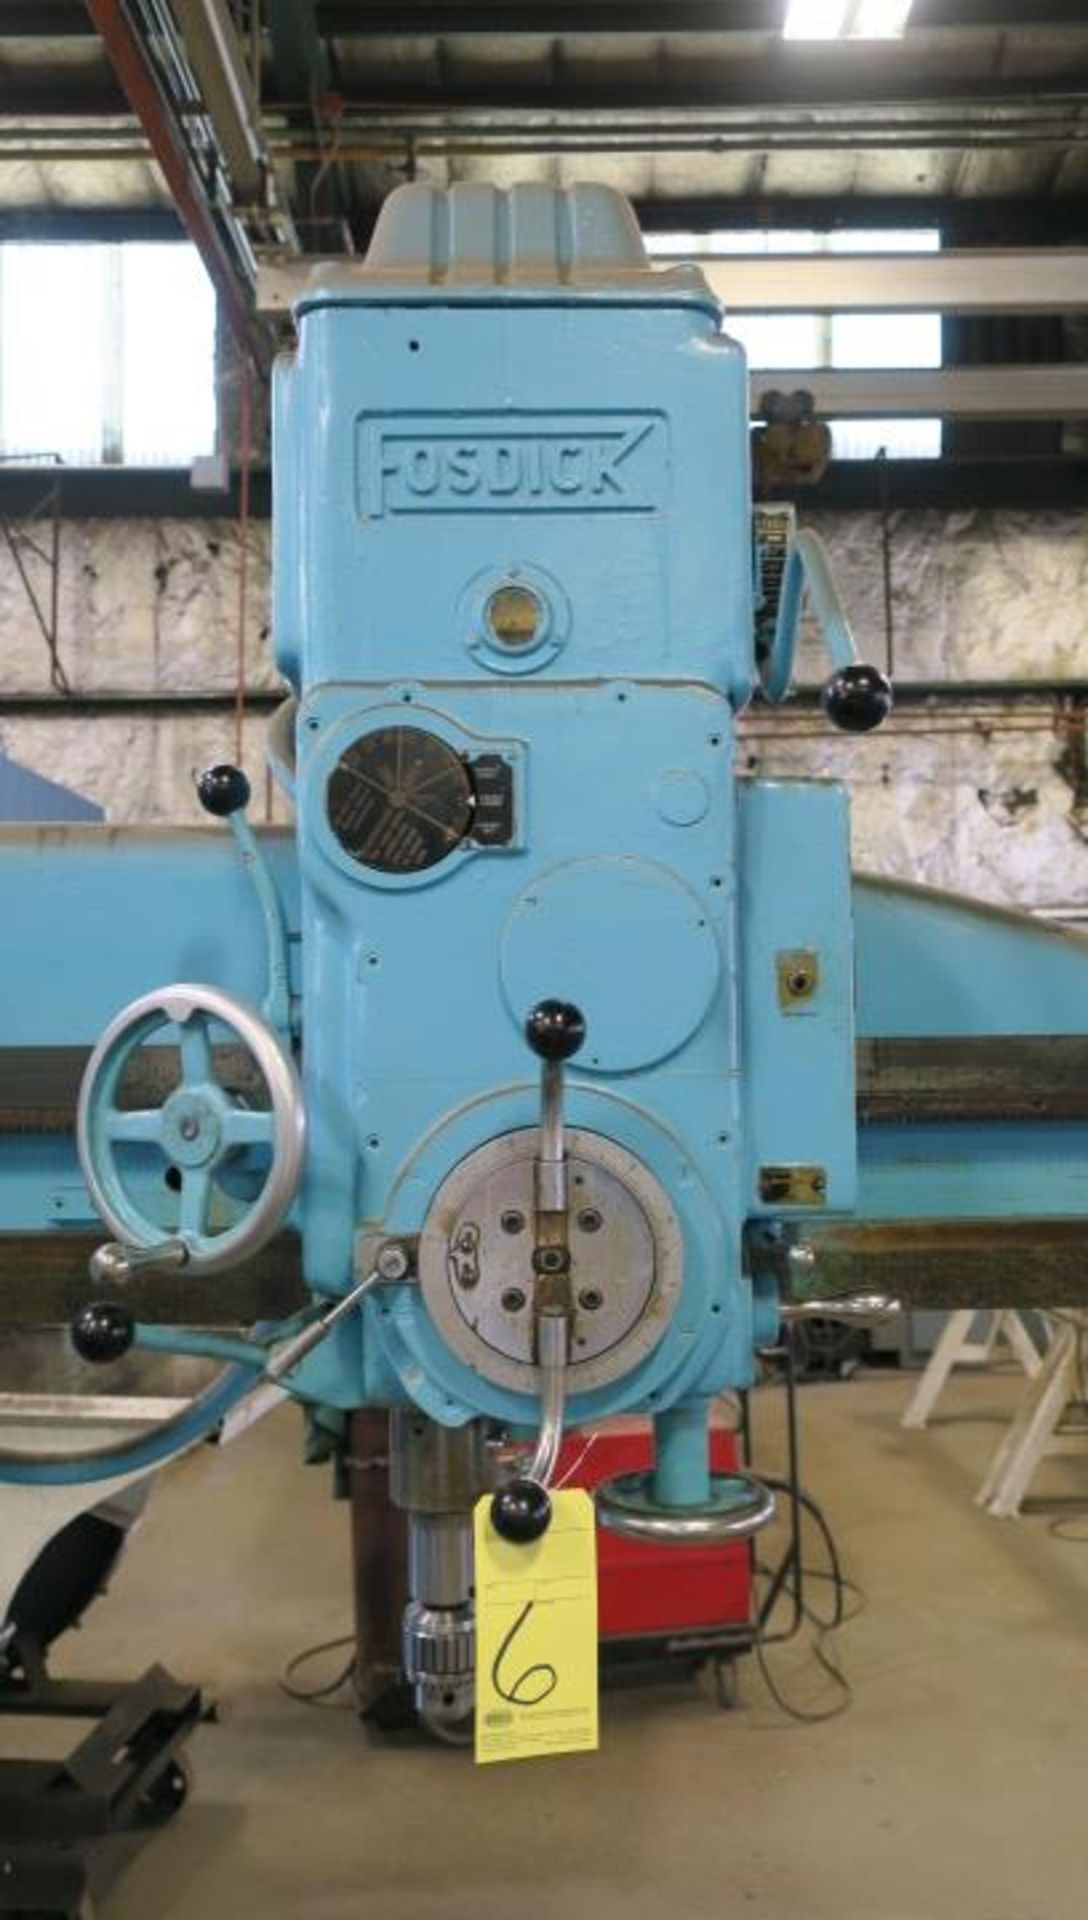 "Lot 6 - RADIAL ARM DRILL, FOSDICK 4' SENSITIVE TYPE, spds: 50-2000 RPM, #4 MT spdl., 24-1/2"" x 48"" pwr."